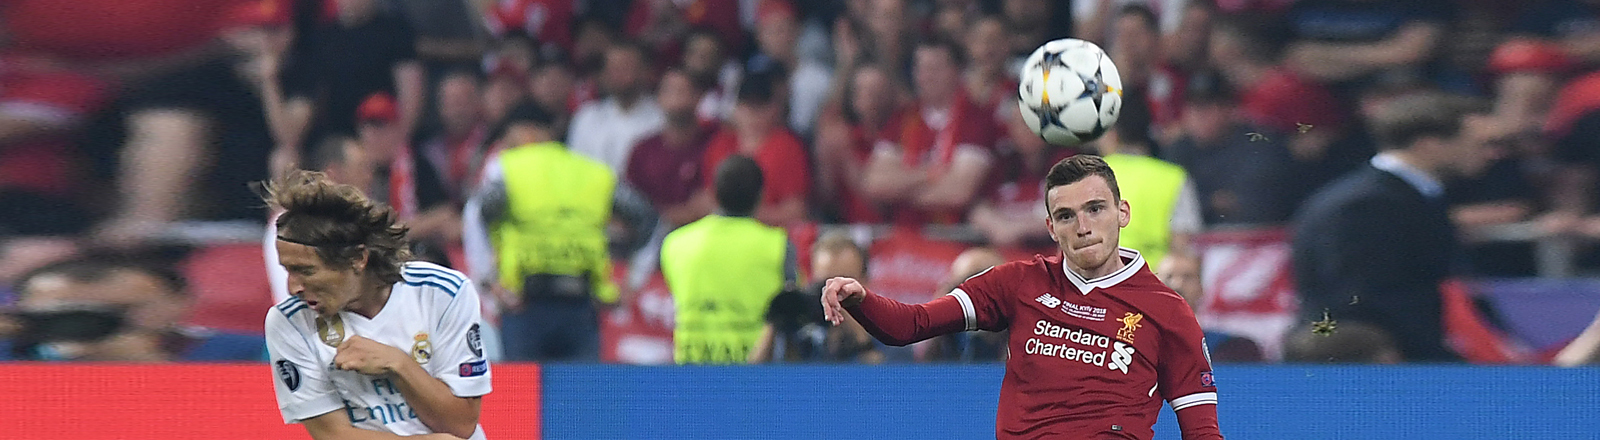 Fußball Champions League Finale Real Madrid - FC Liverpool am 26.05.2018